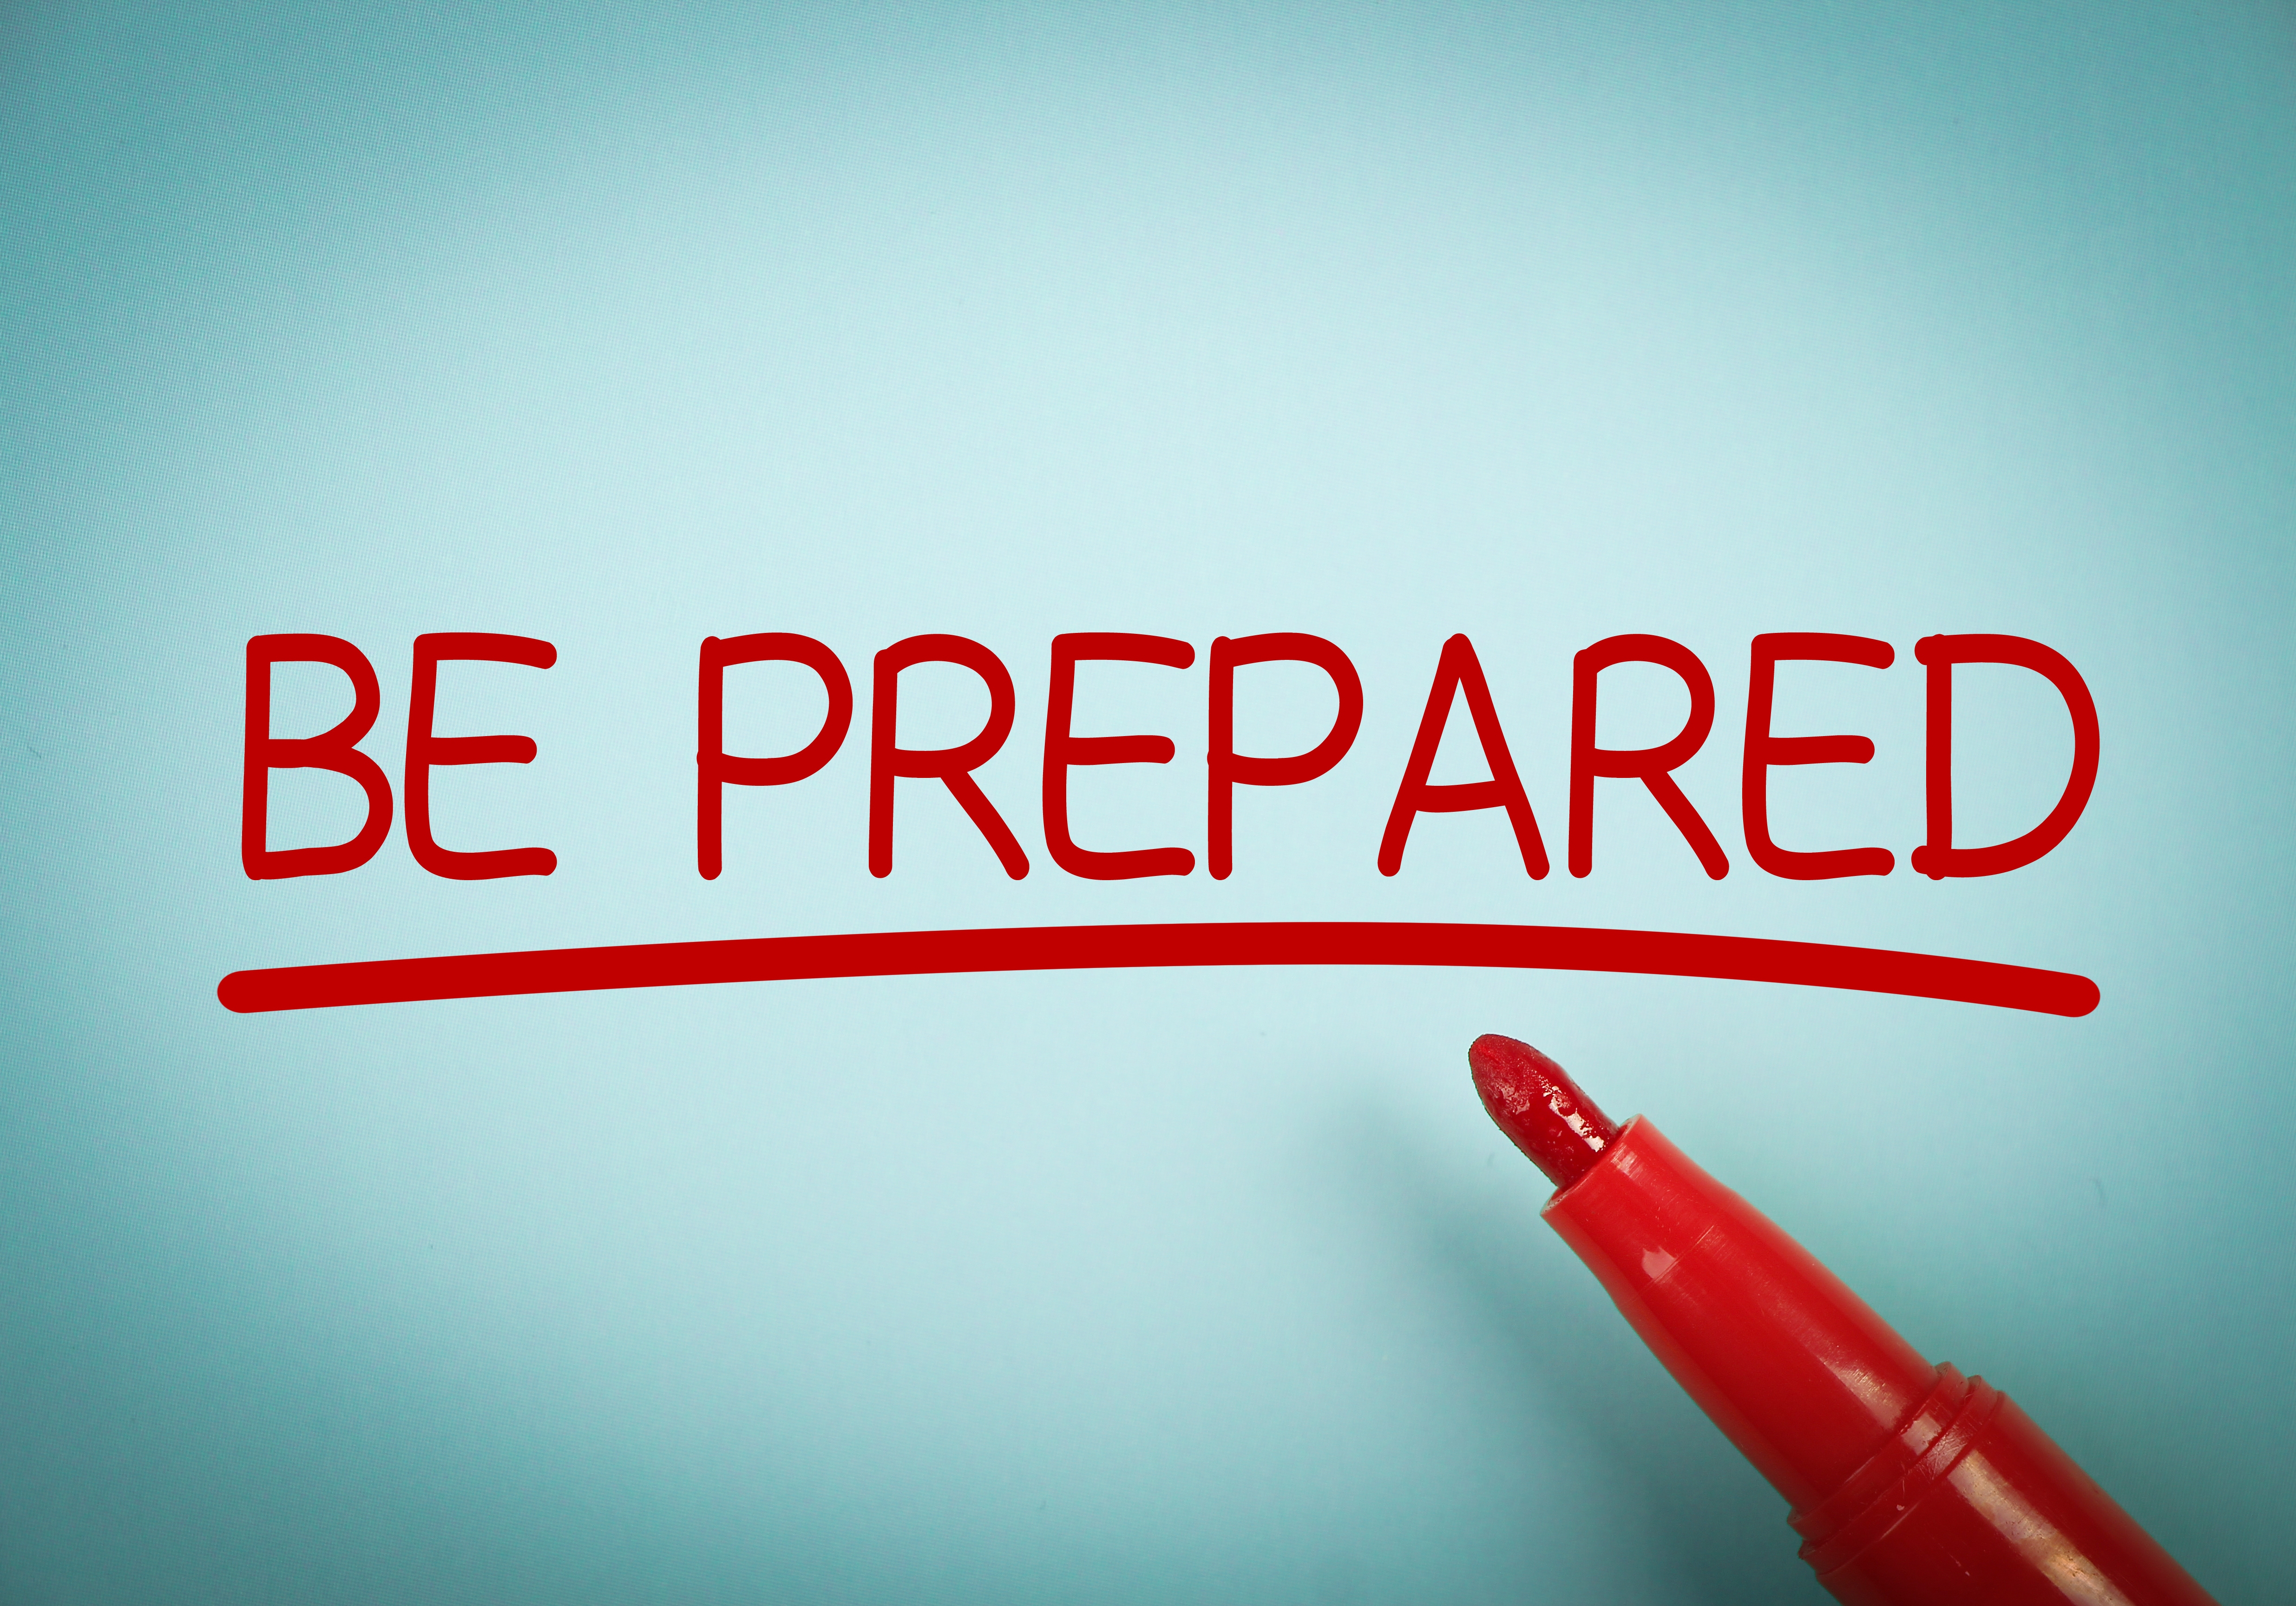 Emergency preparedness and disaster response in